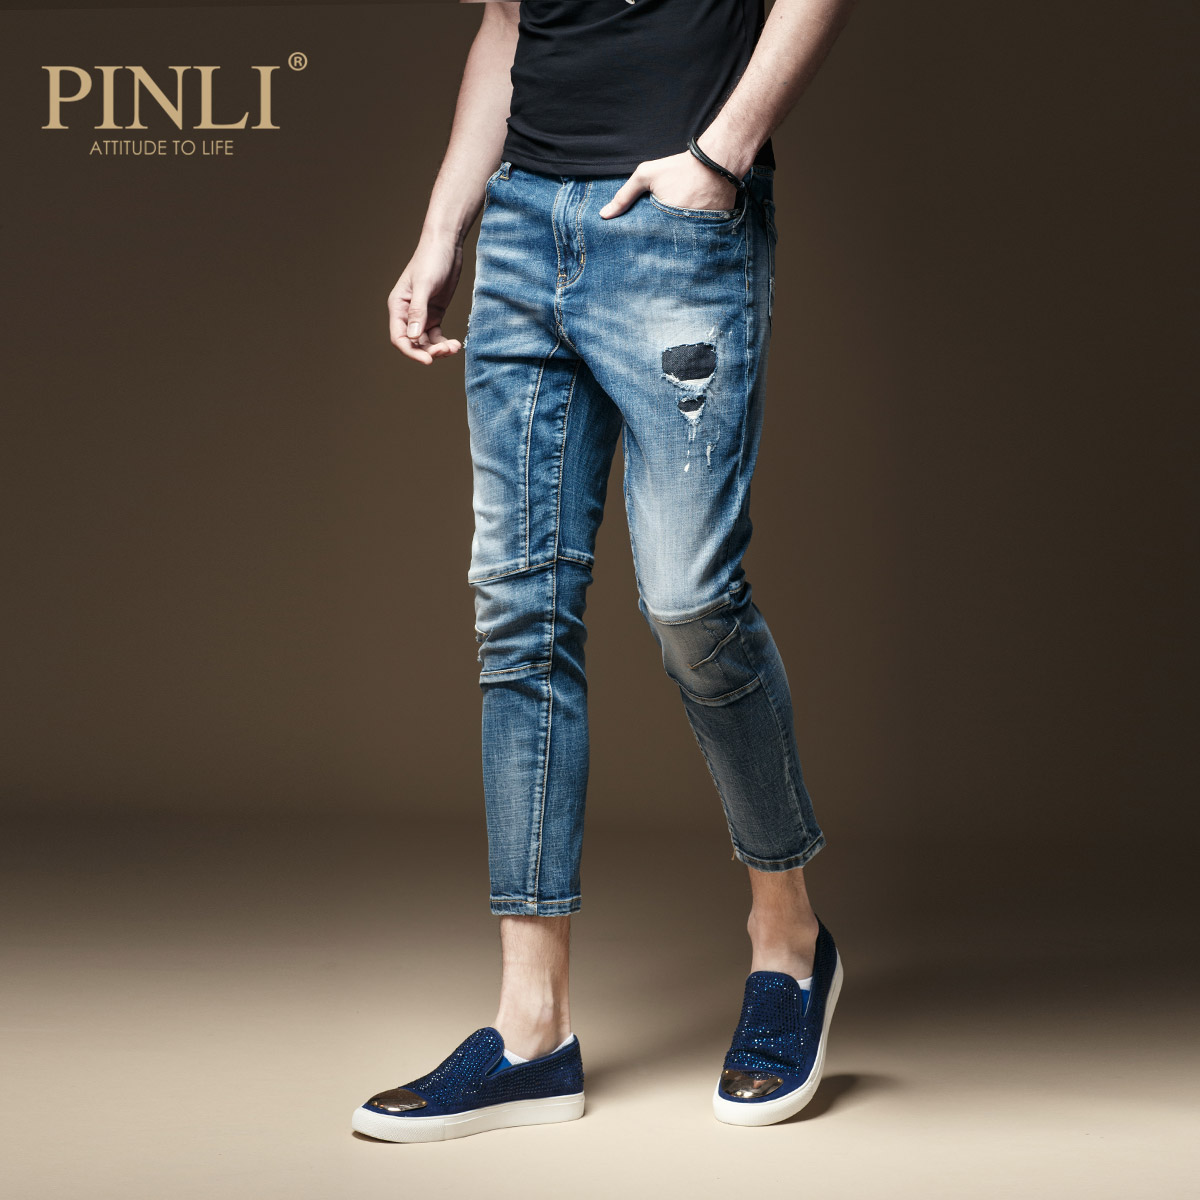 Fake Designer Clothes Jeans Micro Summer Cultivate Morality Play Foot Hole In Nine Minutes Of Pants Men's Trousers D172116004